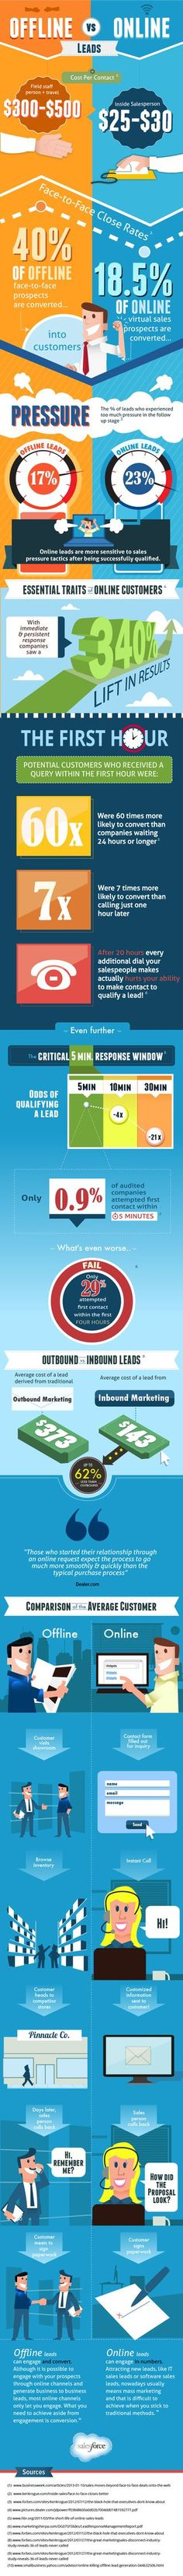 Lead Generation: The Differences Between Online and Offline Leads [INFOGRAPHIC]